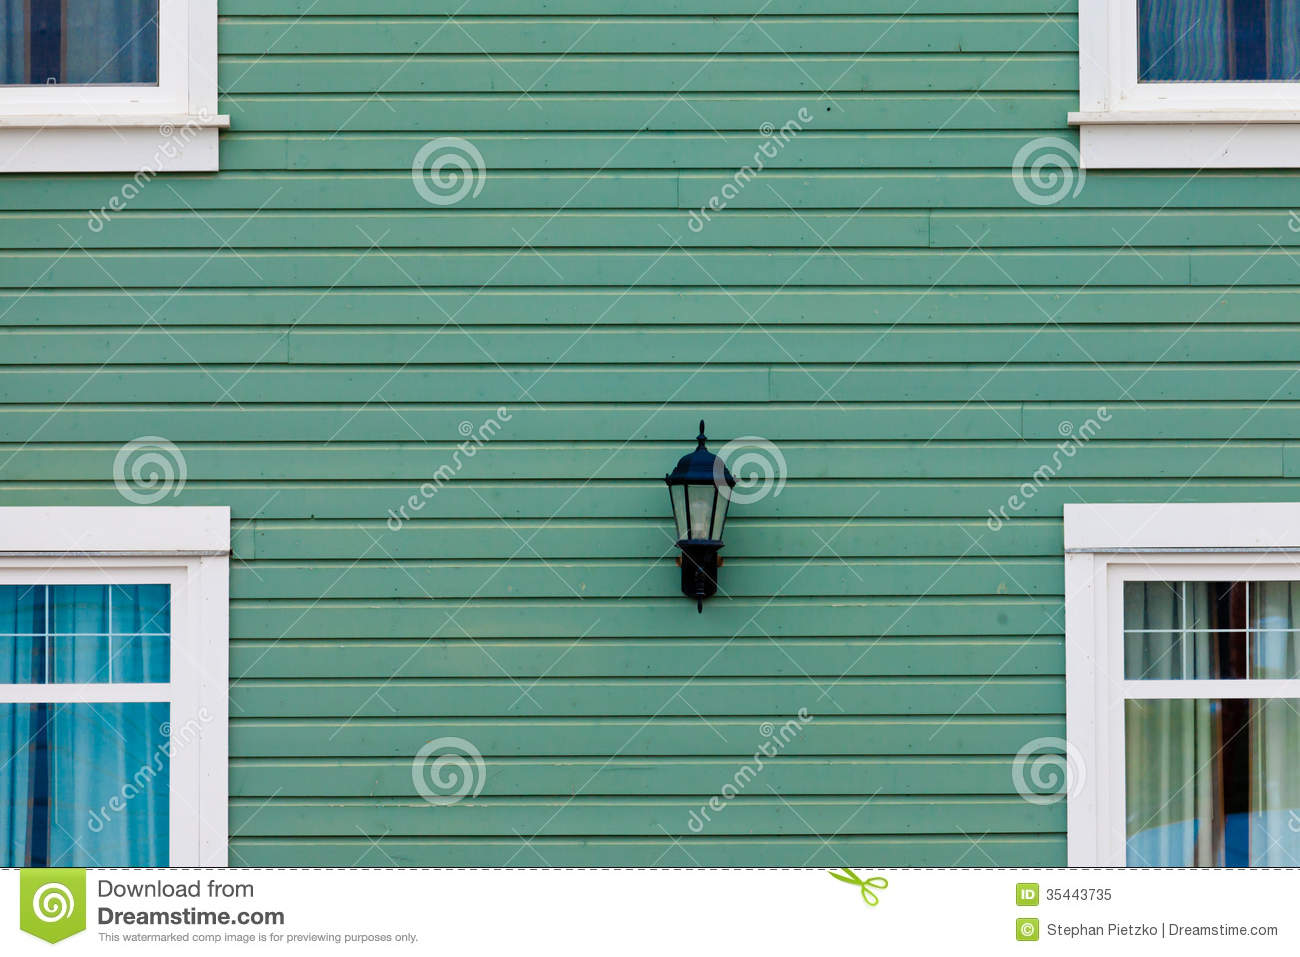 Exterior wall green siding center lamp and windows royalty for Exterior background